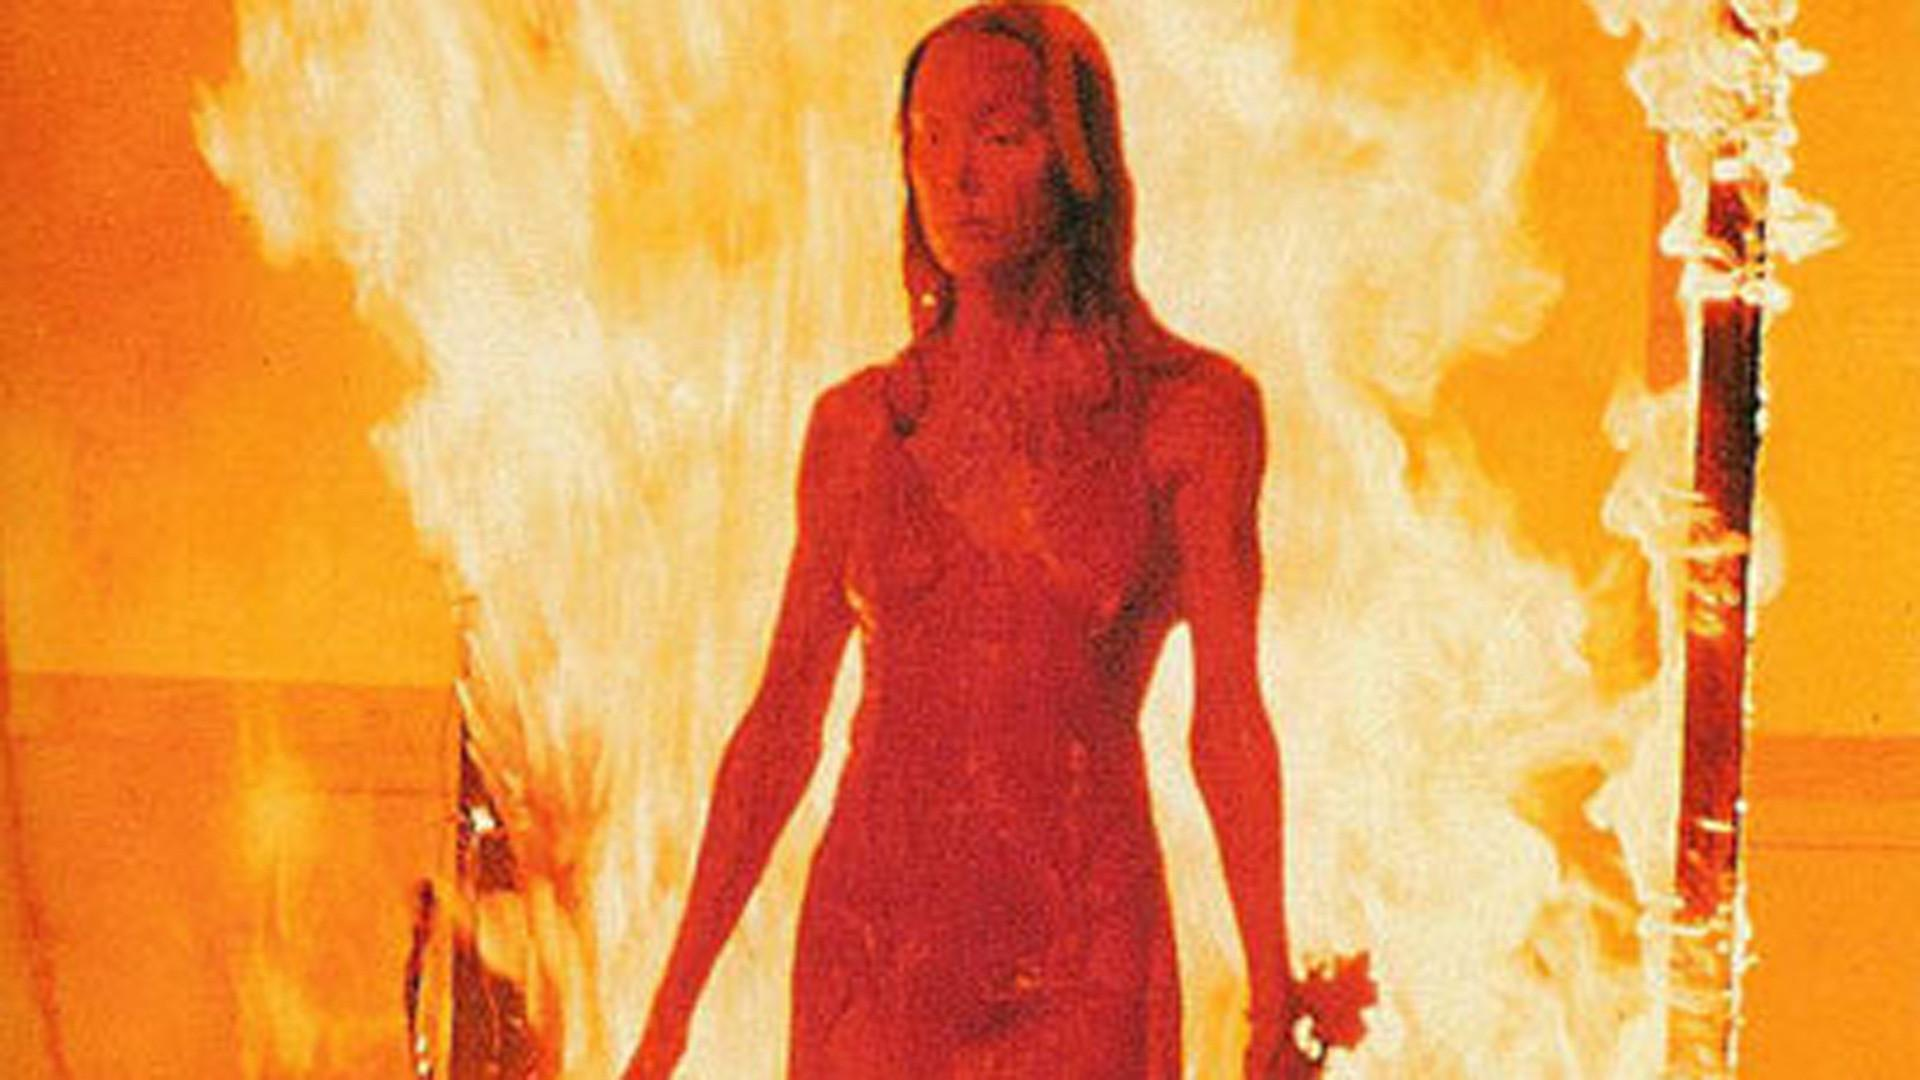 Carrie (1976) | Dawning Creates